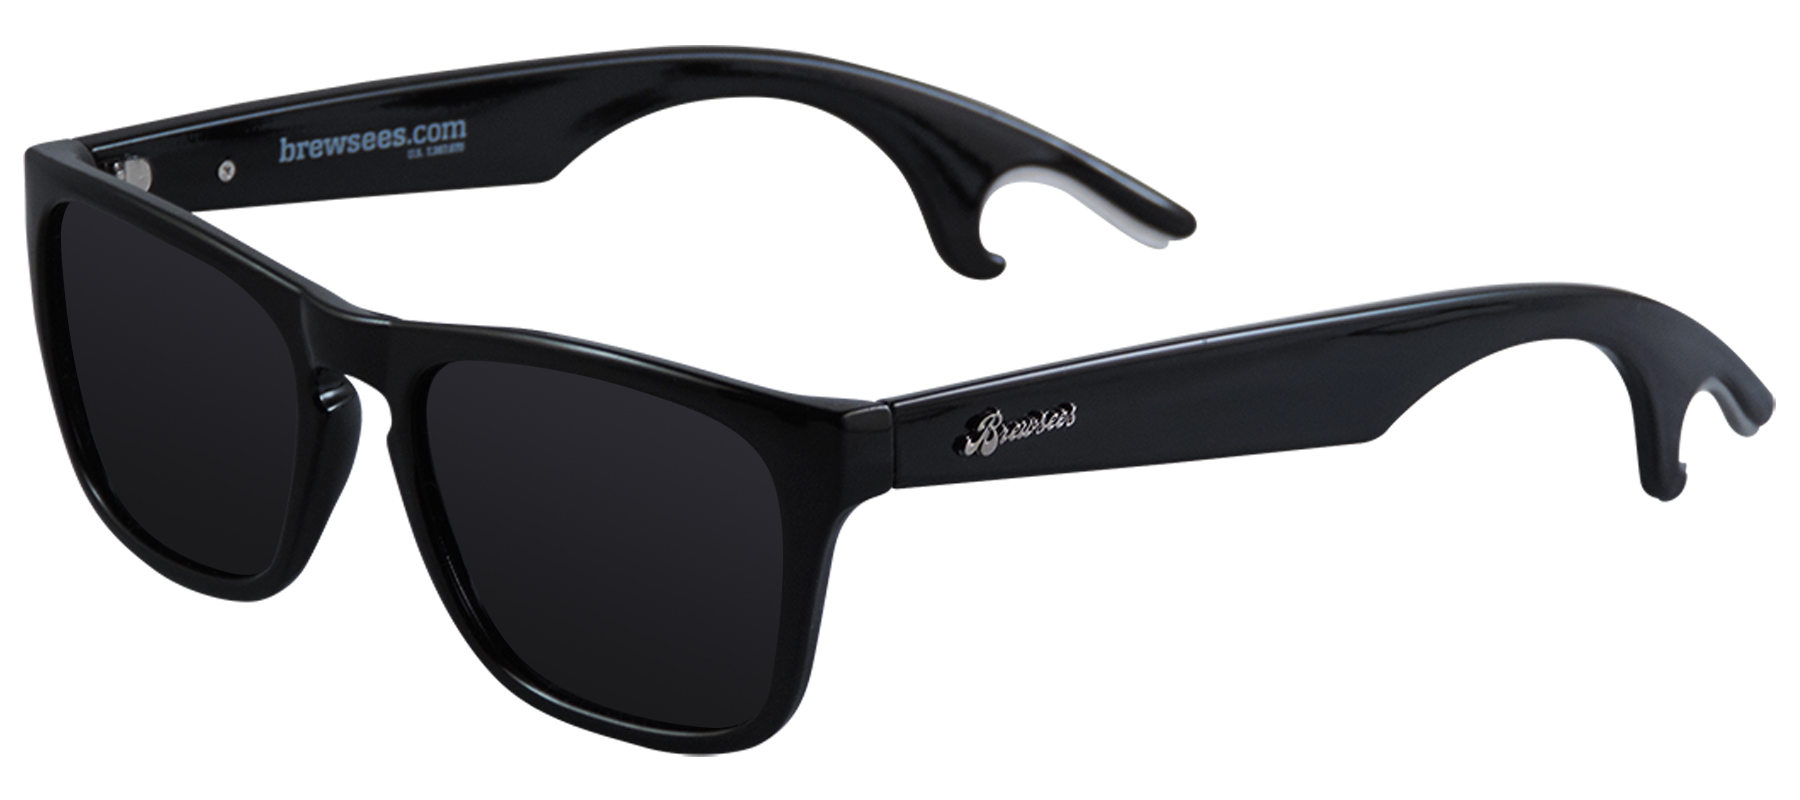 The Wayfarer Bottle Opener Sunglasses are one of this year's top groomsmen gifts